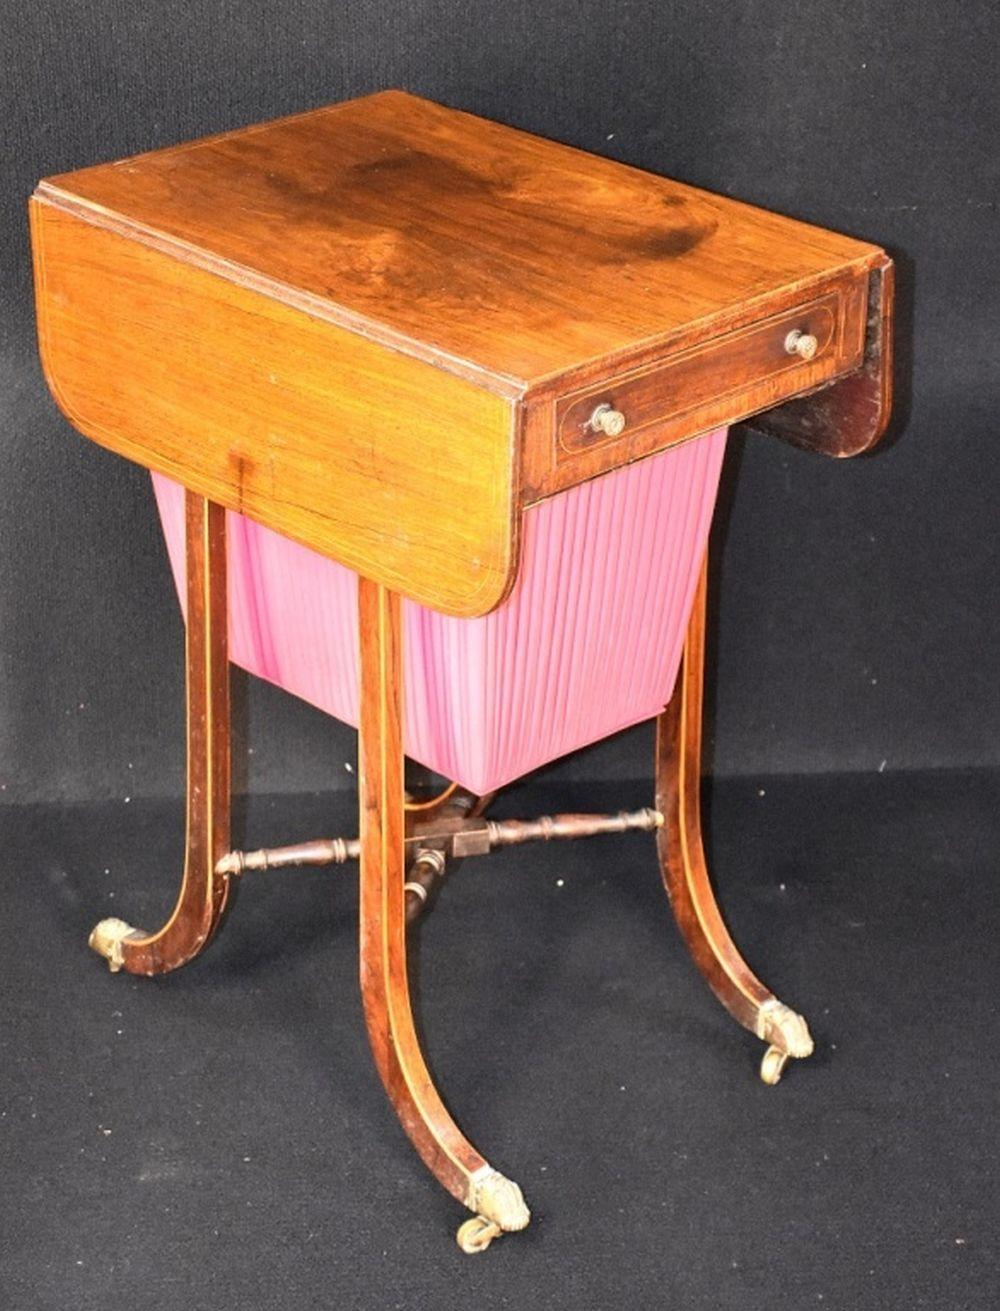 A fine and rare English early 19th century Rosewoo…